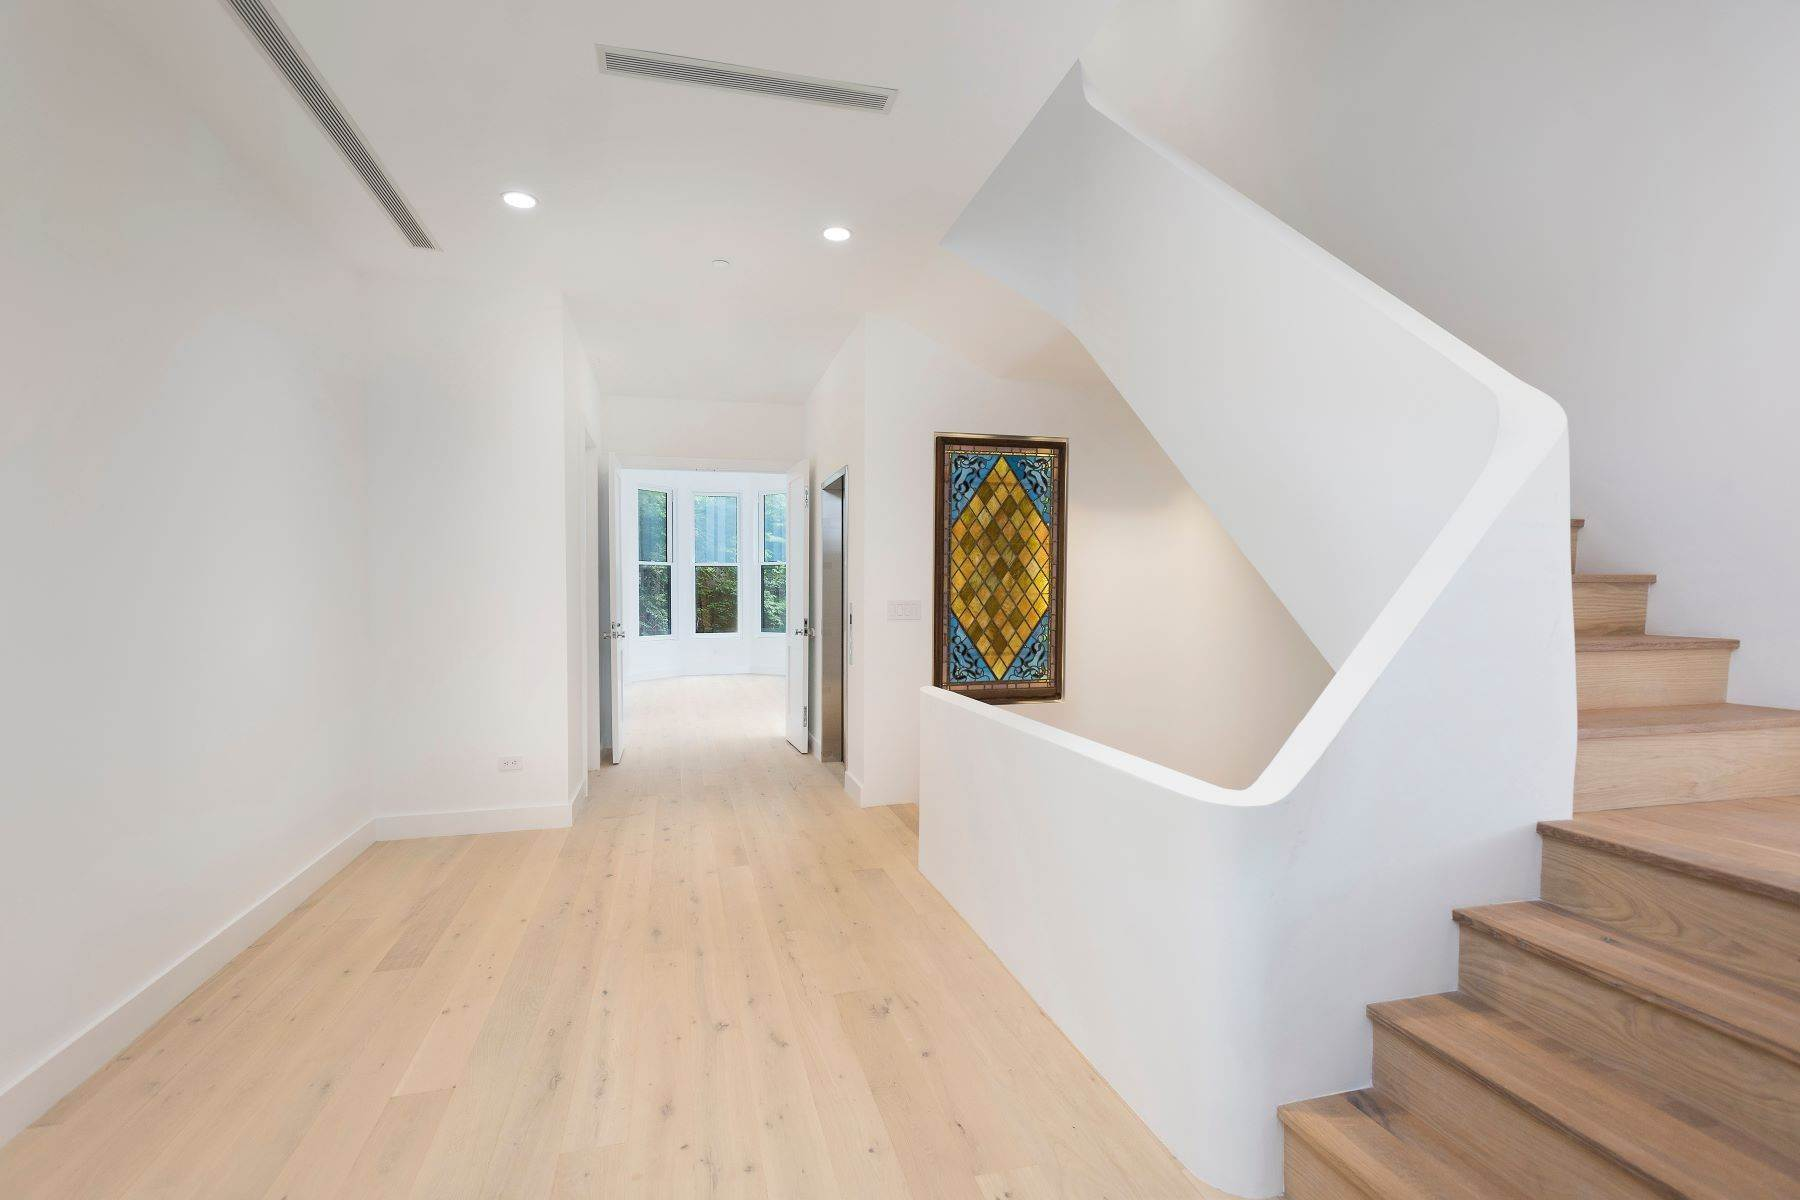 townhouses for Active at Masterfully Renovated Brownstone 67 Remsen Street Brooklyn, New York 11201 United States